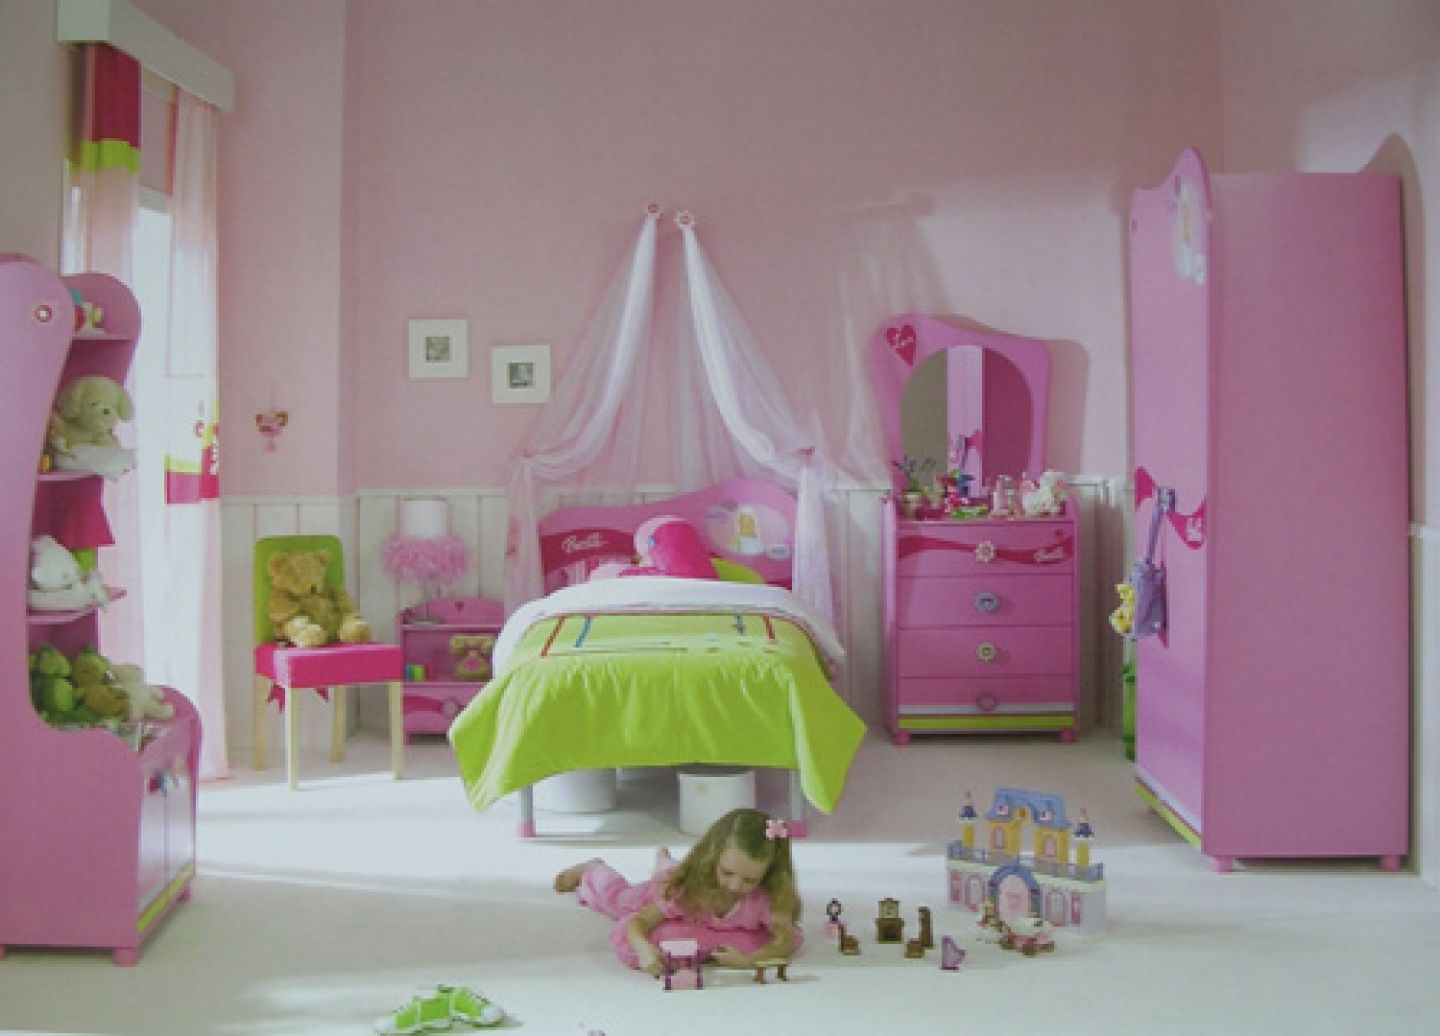 Decorating Little Girls Room Kids Bedroom Ideas  Kids Bedroom Pinky Decoration Inspiration